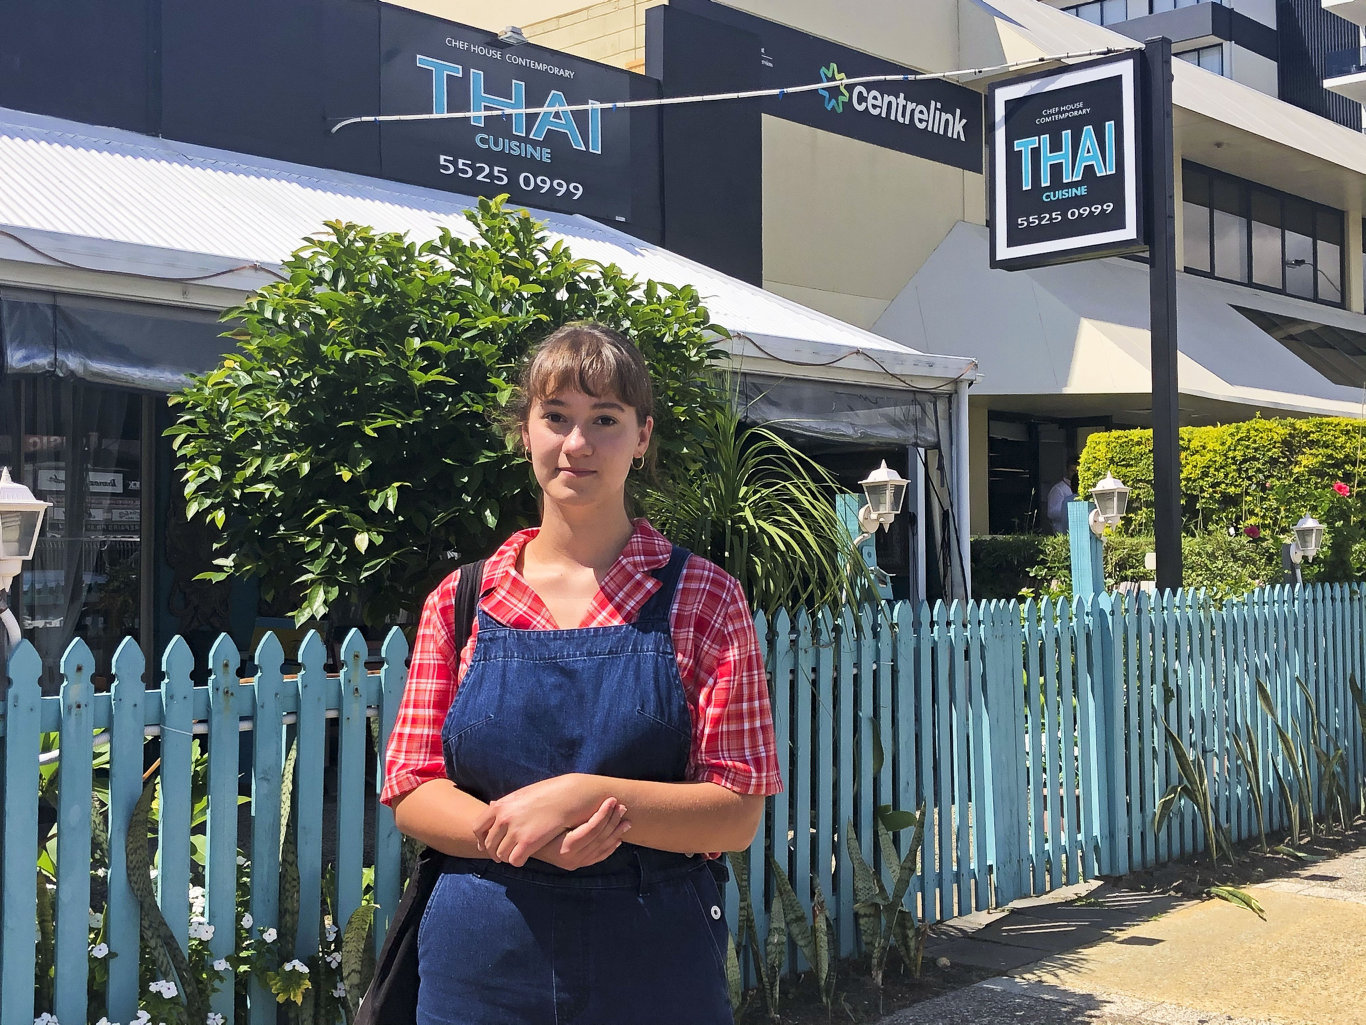 Tugun local Vivi Baker, 18, was one of the many hospitality staff laid off as a consequence of the government's coronavirus restrictions on restaurants. She is pictured here outside Currumbin Centrelink Photo: Jessica Lamb